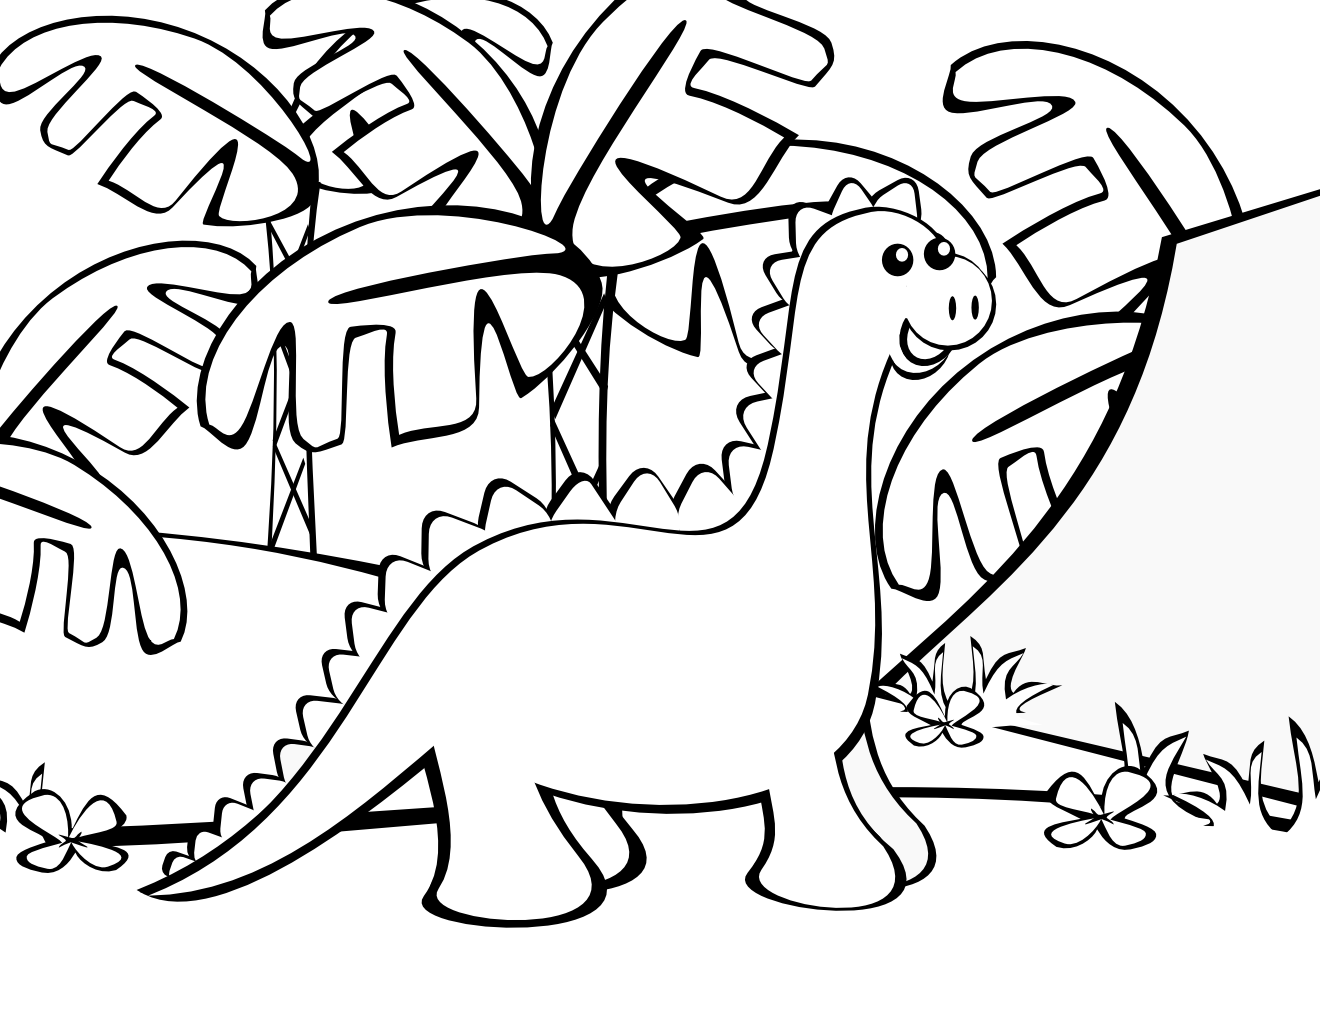 Cute Dinosaur Coloring Pages For Kids